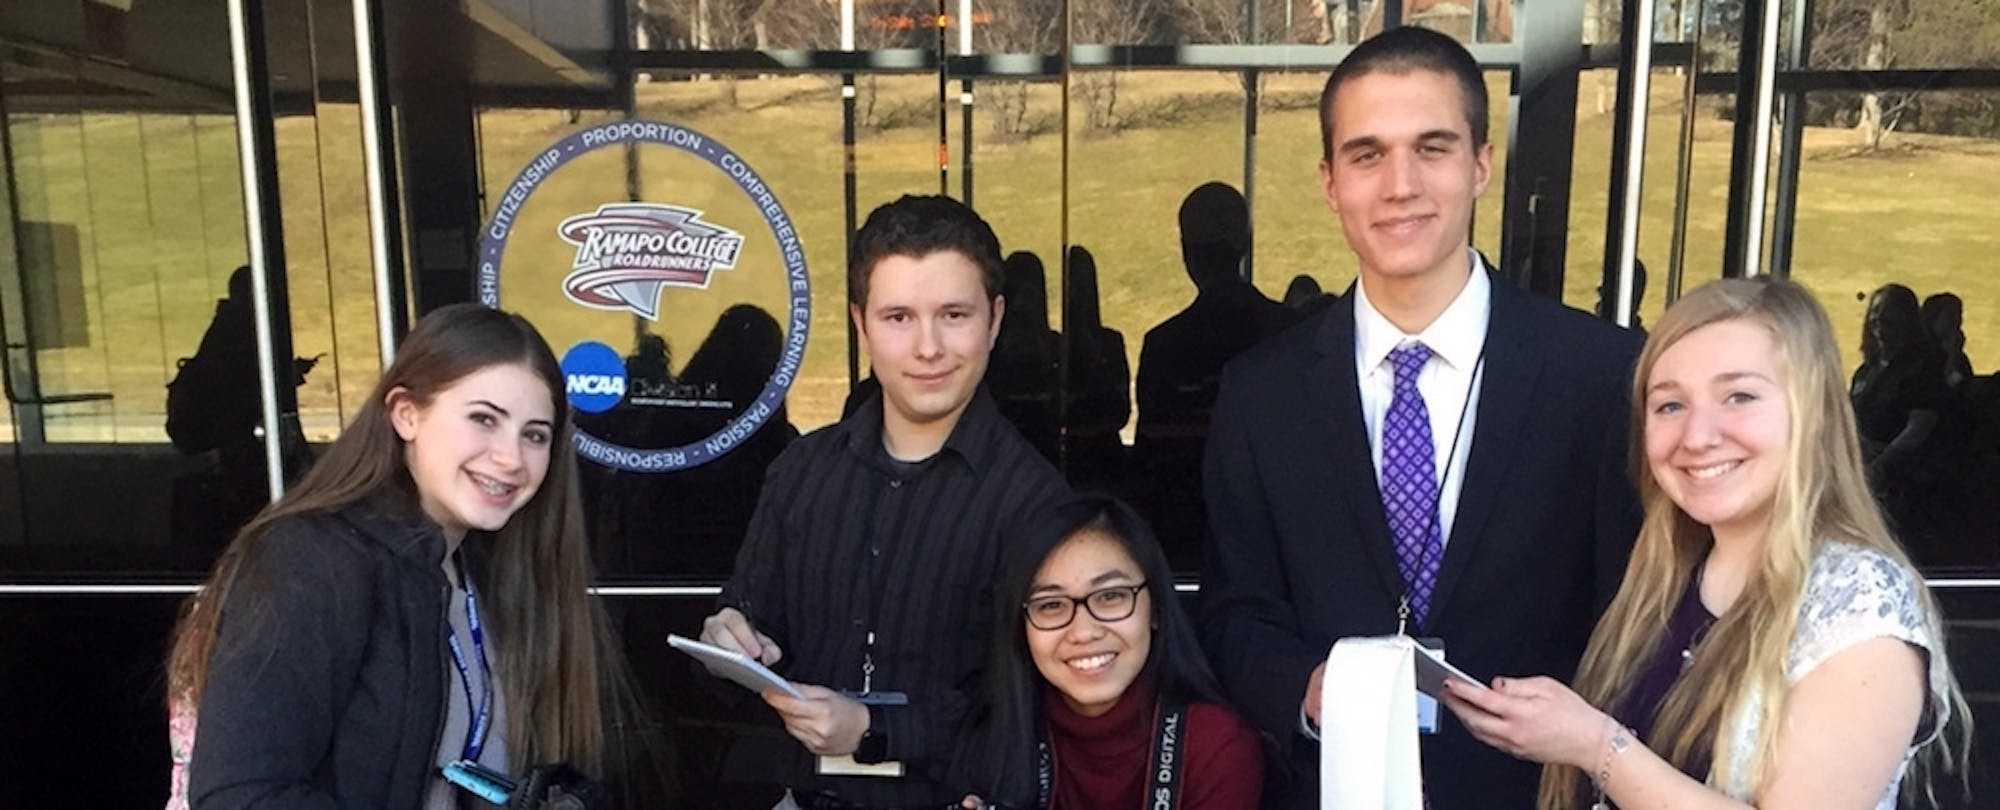 Student Journalists Rock Education Conference in New Jersey